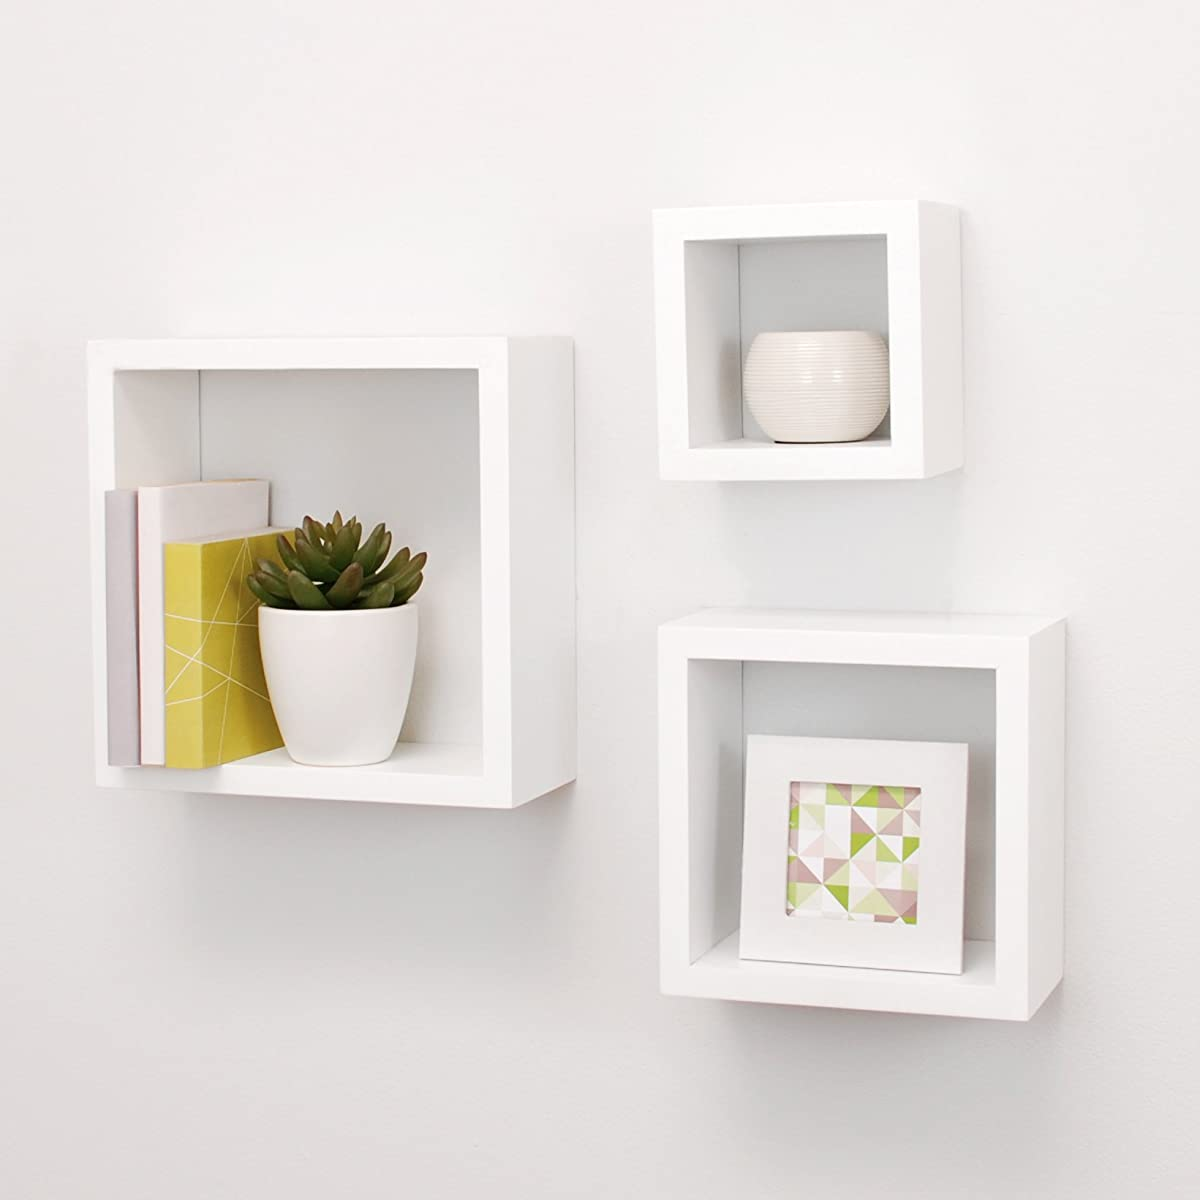 Nexxt cubbi contemporary floating wall shelves 5 by 5 inch 7 by 7 nexxt cubbi contemporary floating wall shelves 5 by 5 inch 7 by 7 inch 9 by jeuxipadfo Image collections